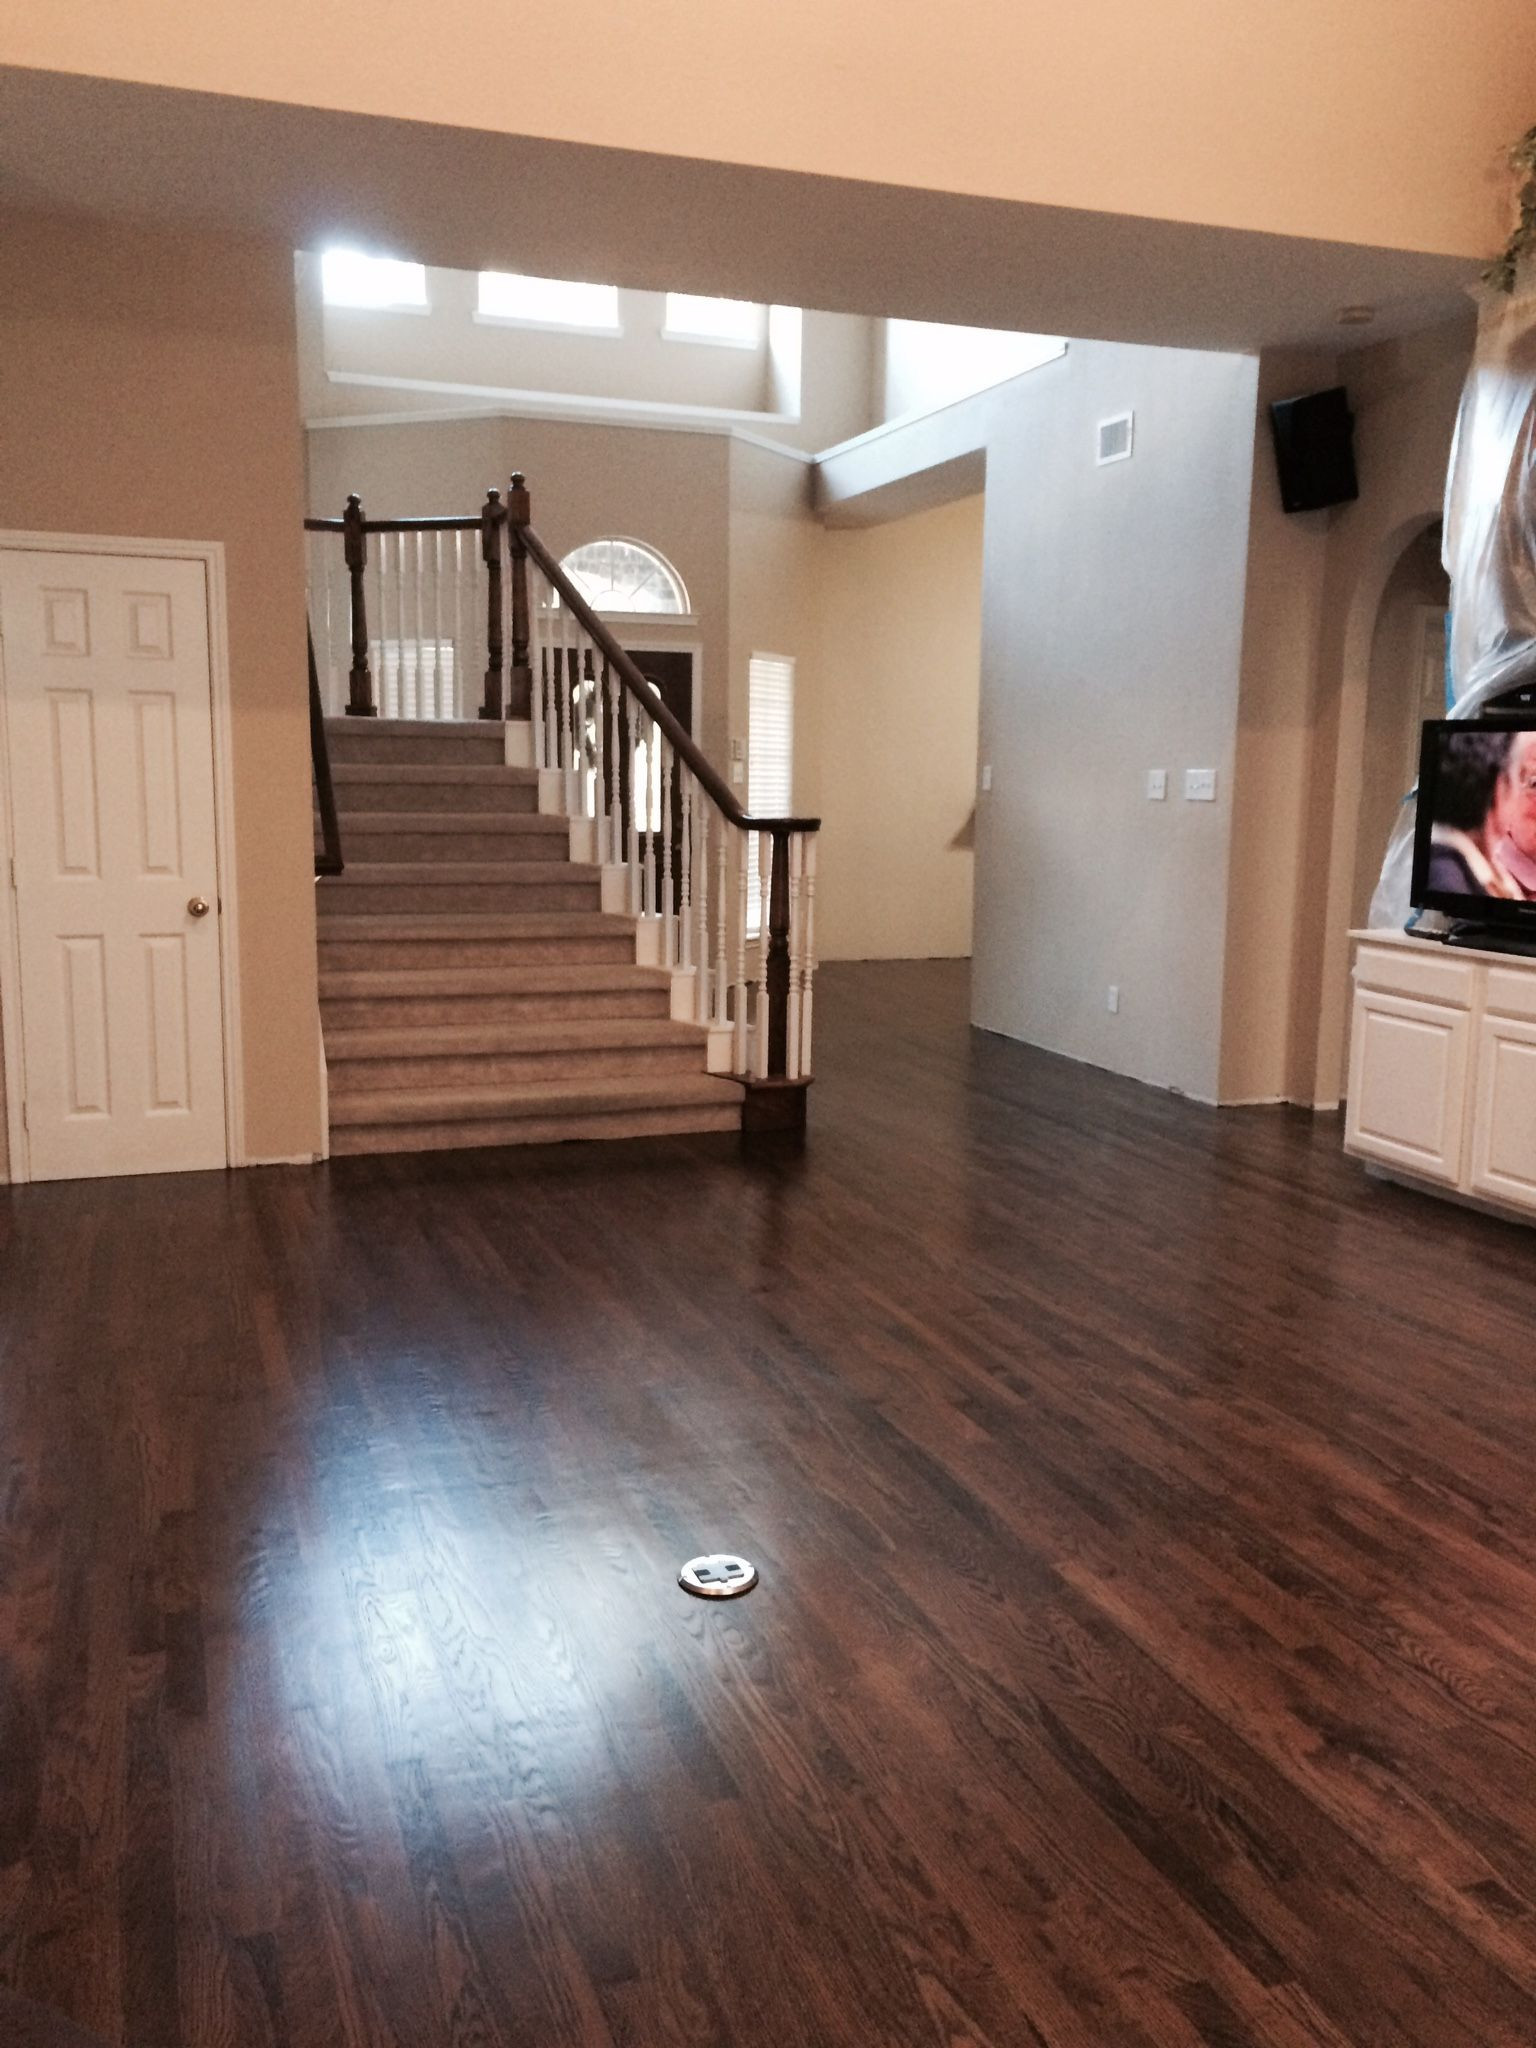 hardwood floor deep cleaning services of dark walnut stain on white oak hardwood remodel 1floors in 2018 with regard to dark walnut stain on white oak hardwood walnut hardwood flooring hardwood floor stain colors